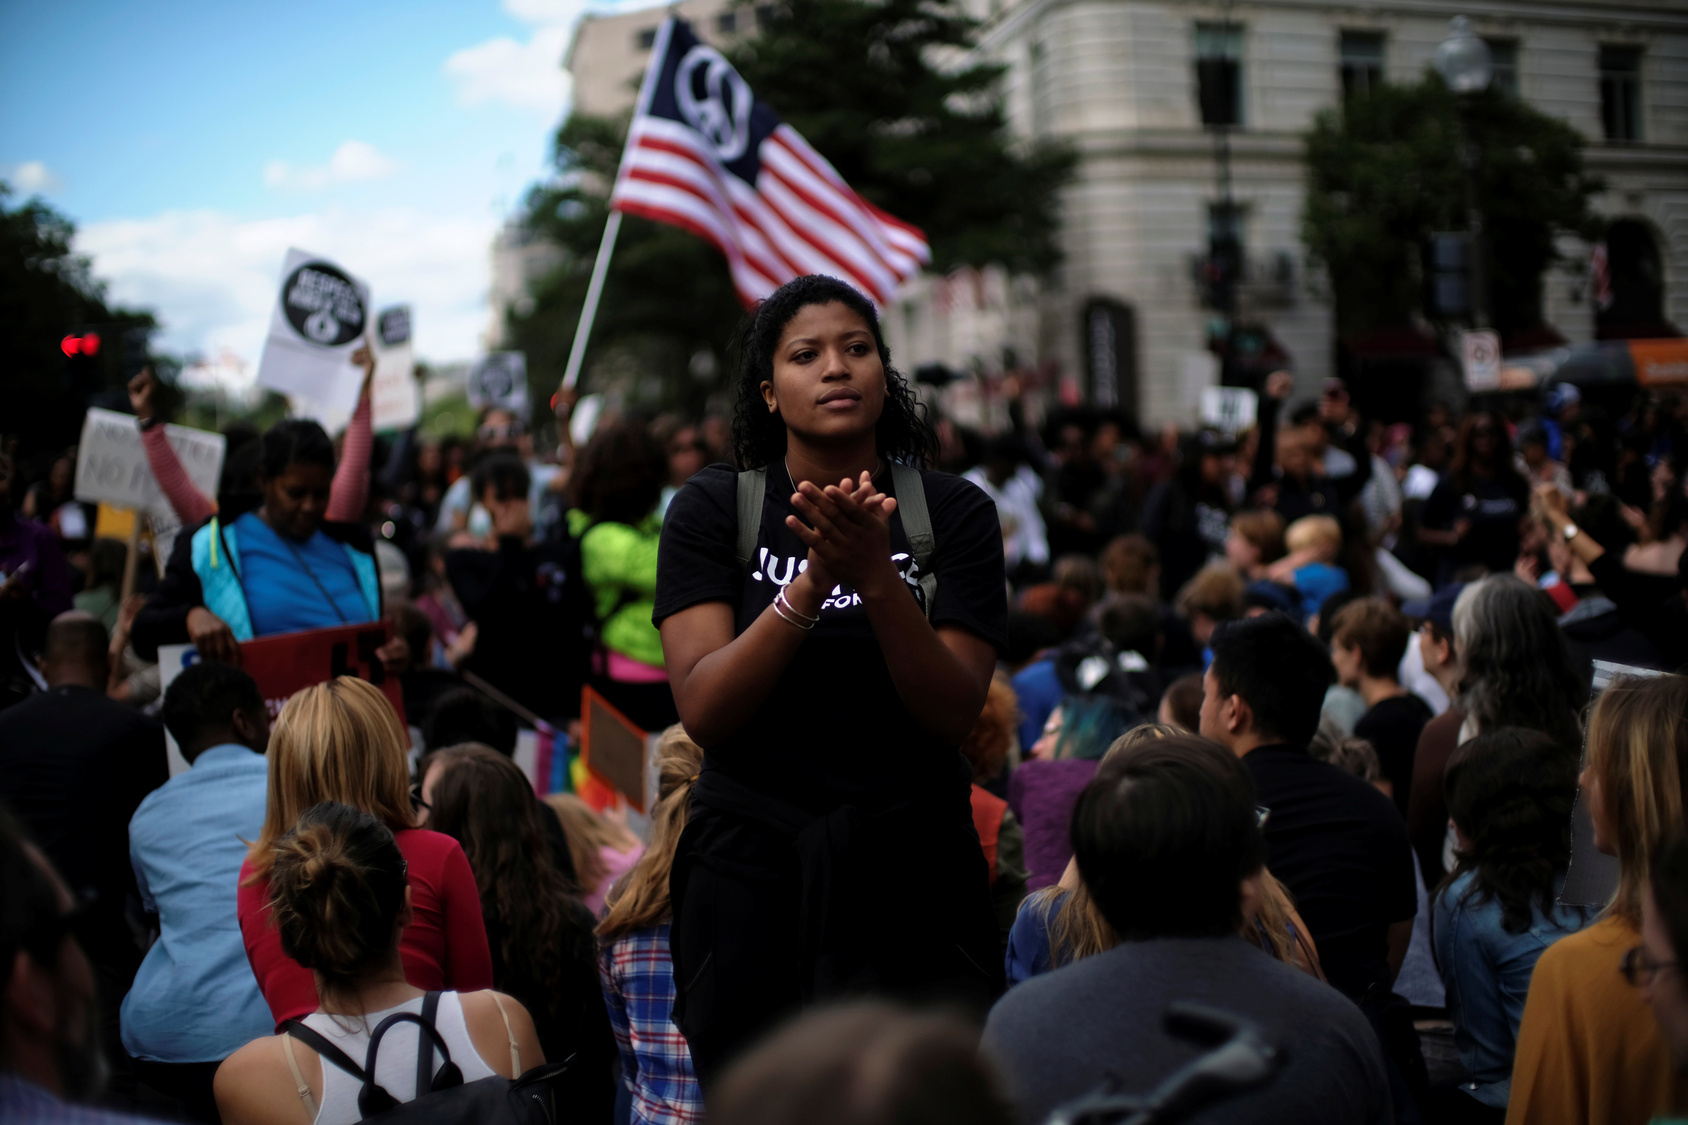 A Woman Applauds As Protesters Kneel On One Knee Outside The Trump International Hotel On Pennsylvania Avenue During The March For Racial Justice Calling For Racial Equity And Justice In Washington in September 30, 2017.